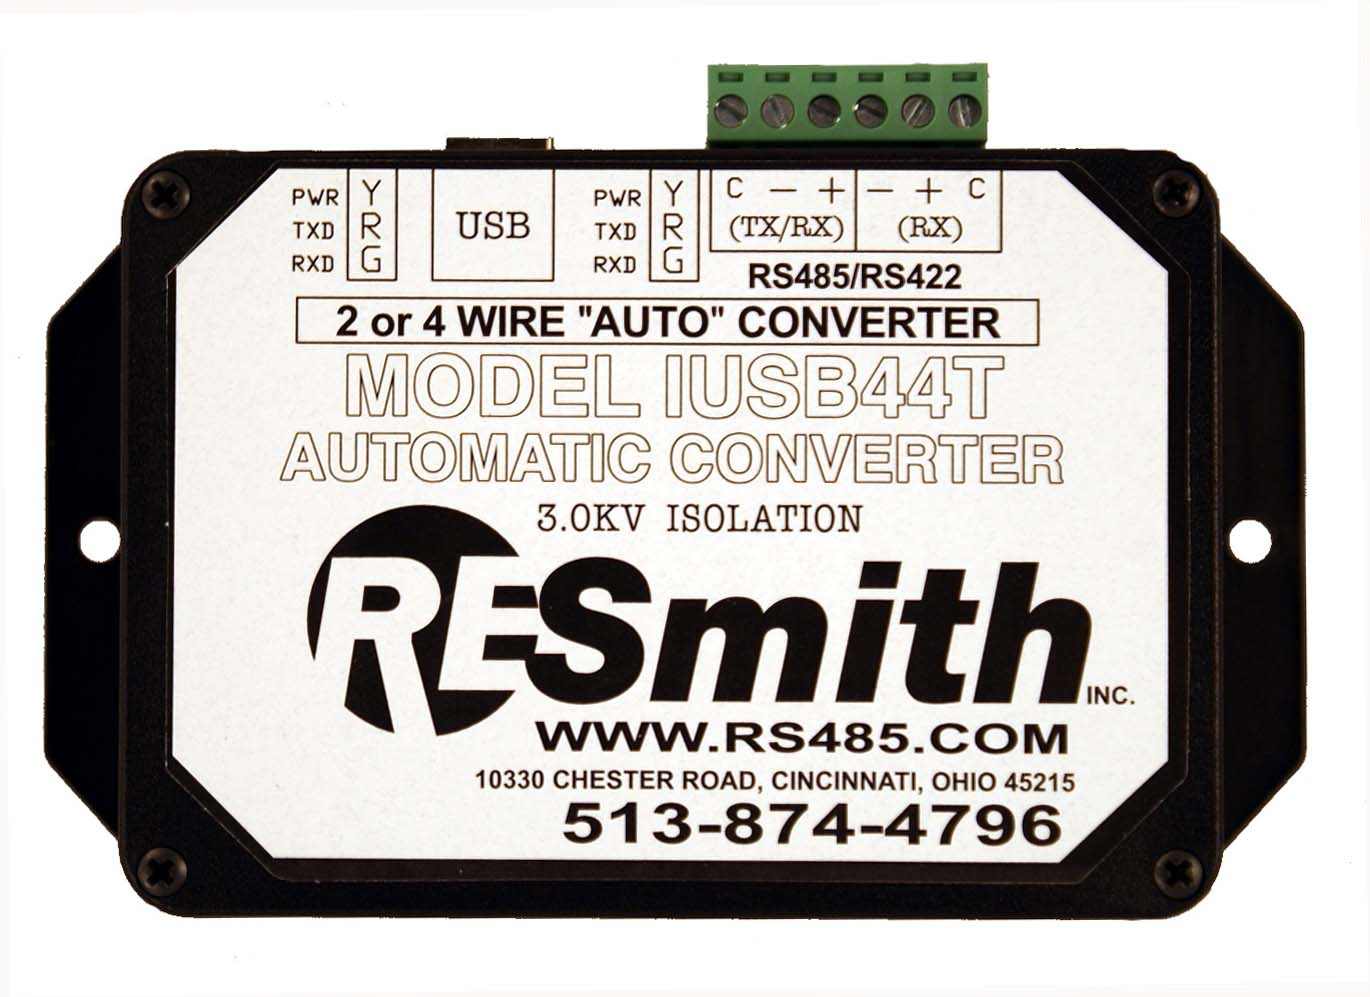 Iusb44t Isolated Usb Rs4852 Wire Half Duplex Or Rs4224 Rs485 Multidrop Wiring Network For You